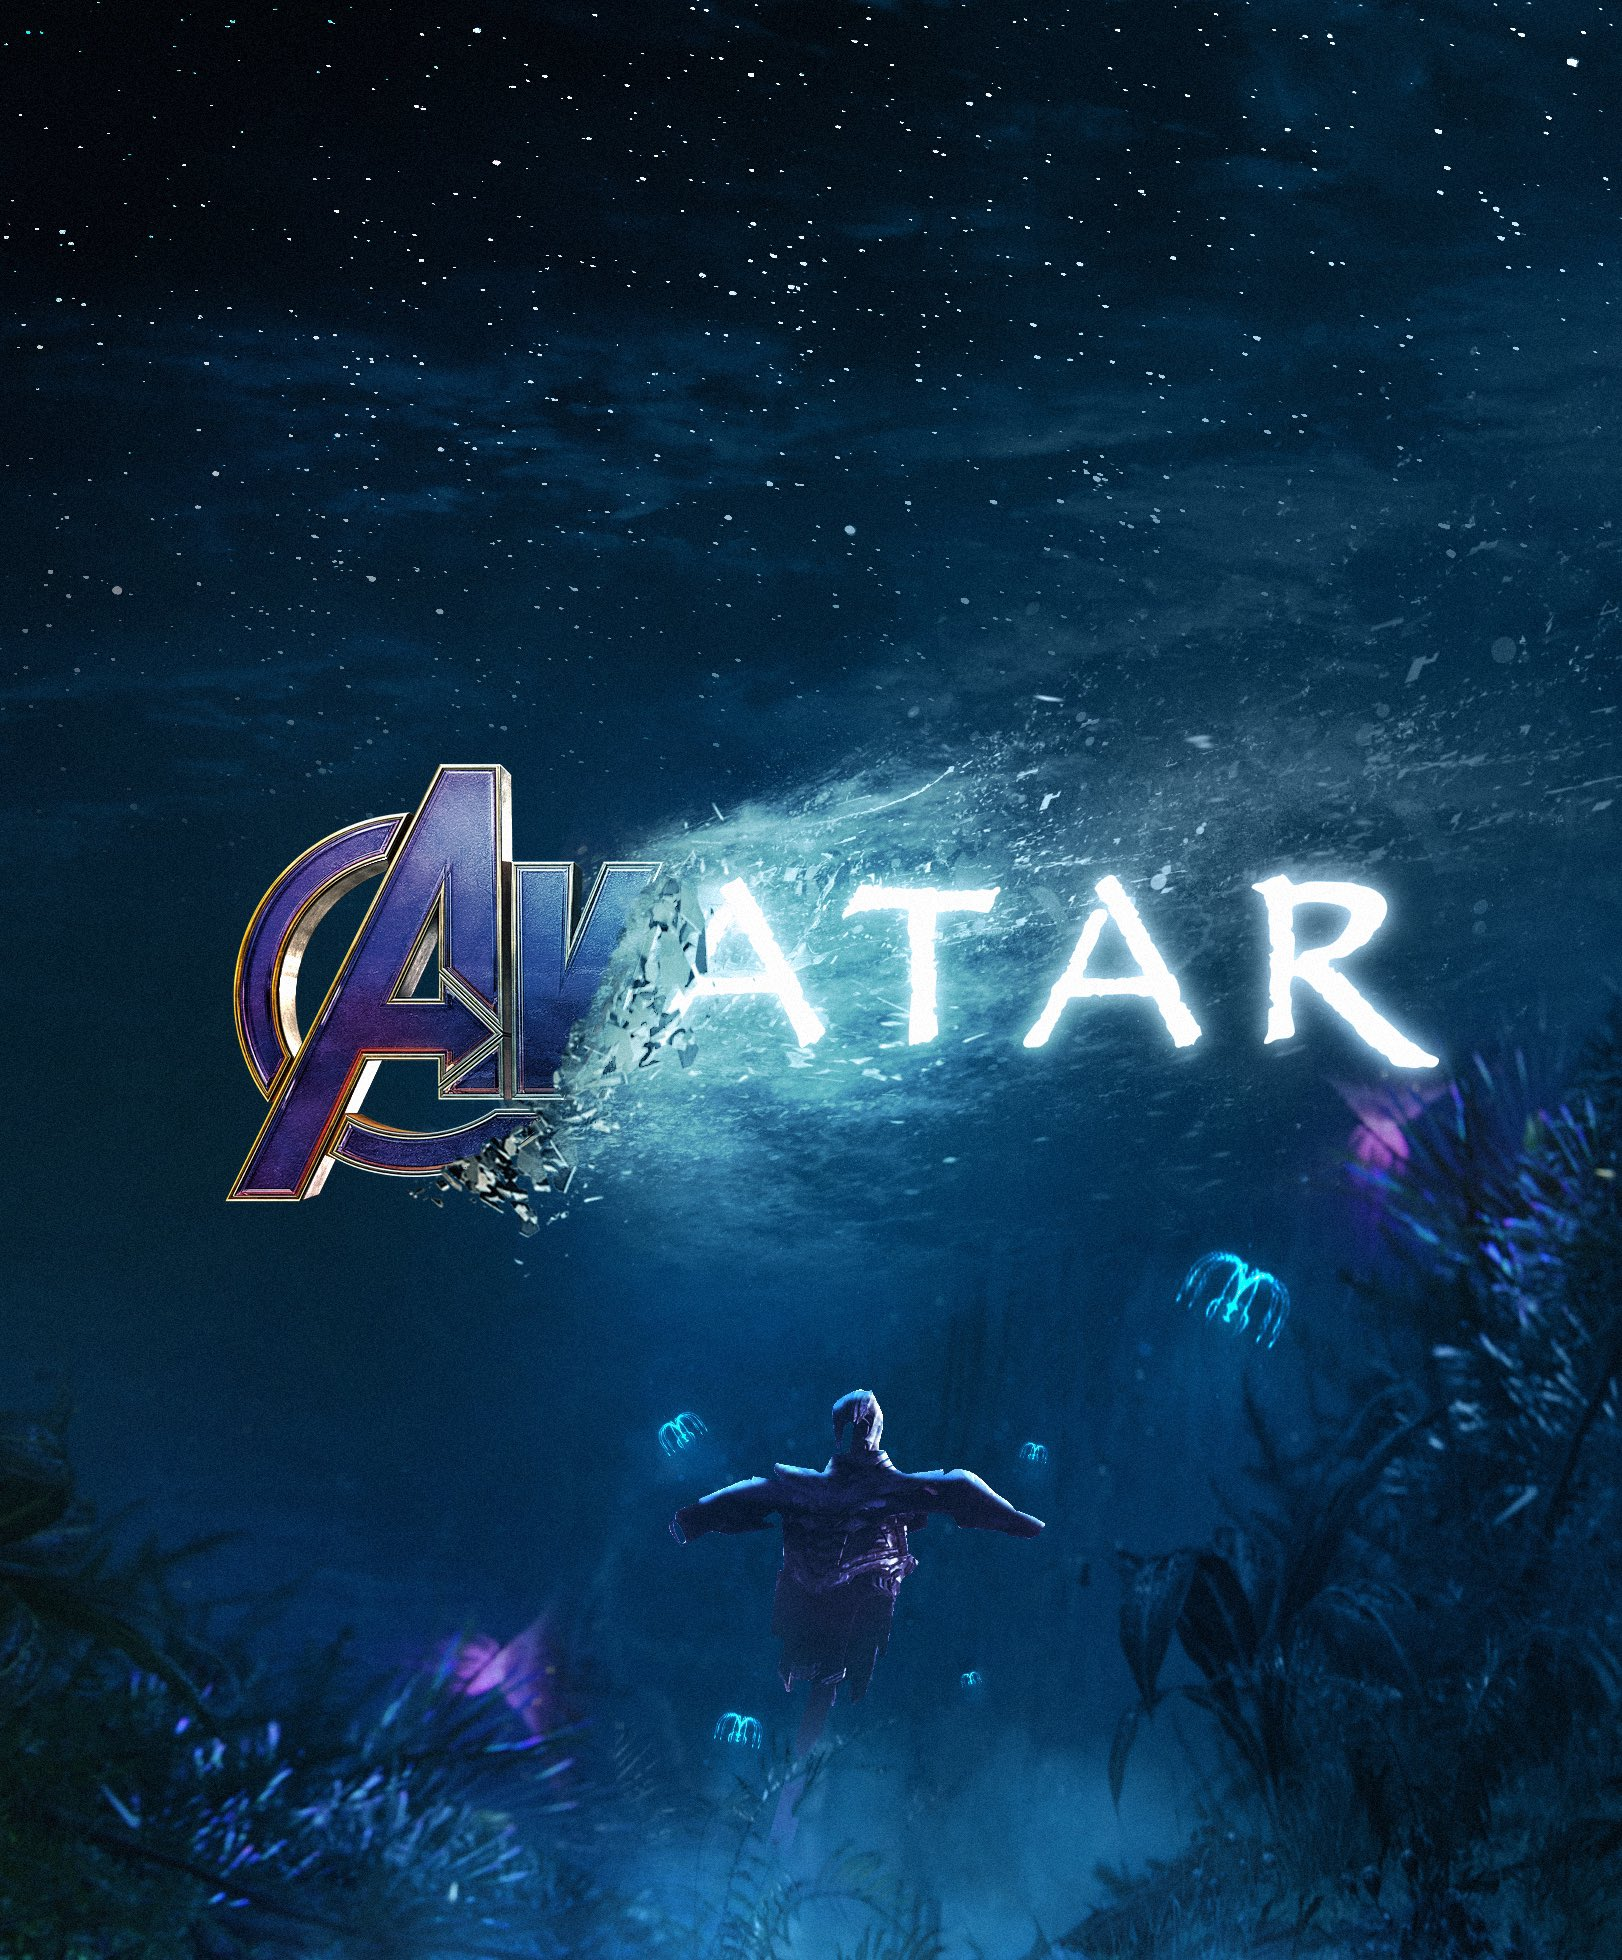 Avatar Passes Avengers: Endgame For Worldwide Box Office Gross